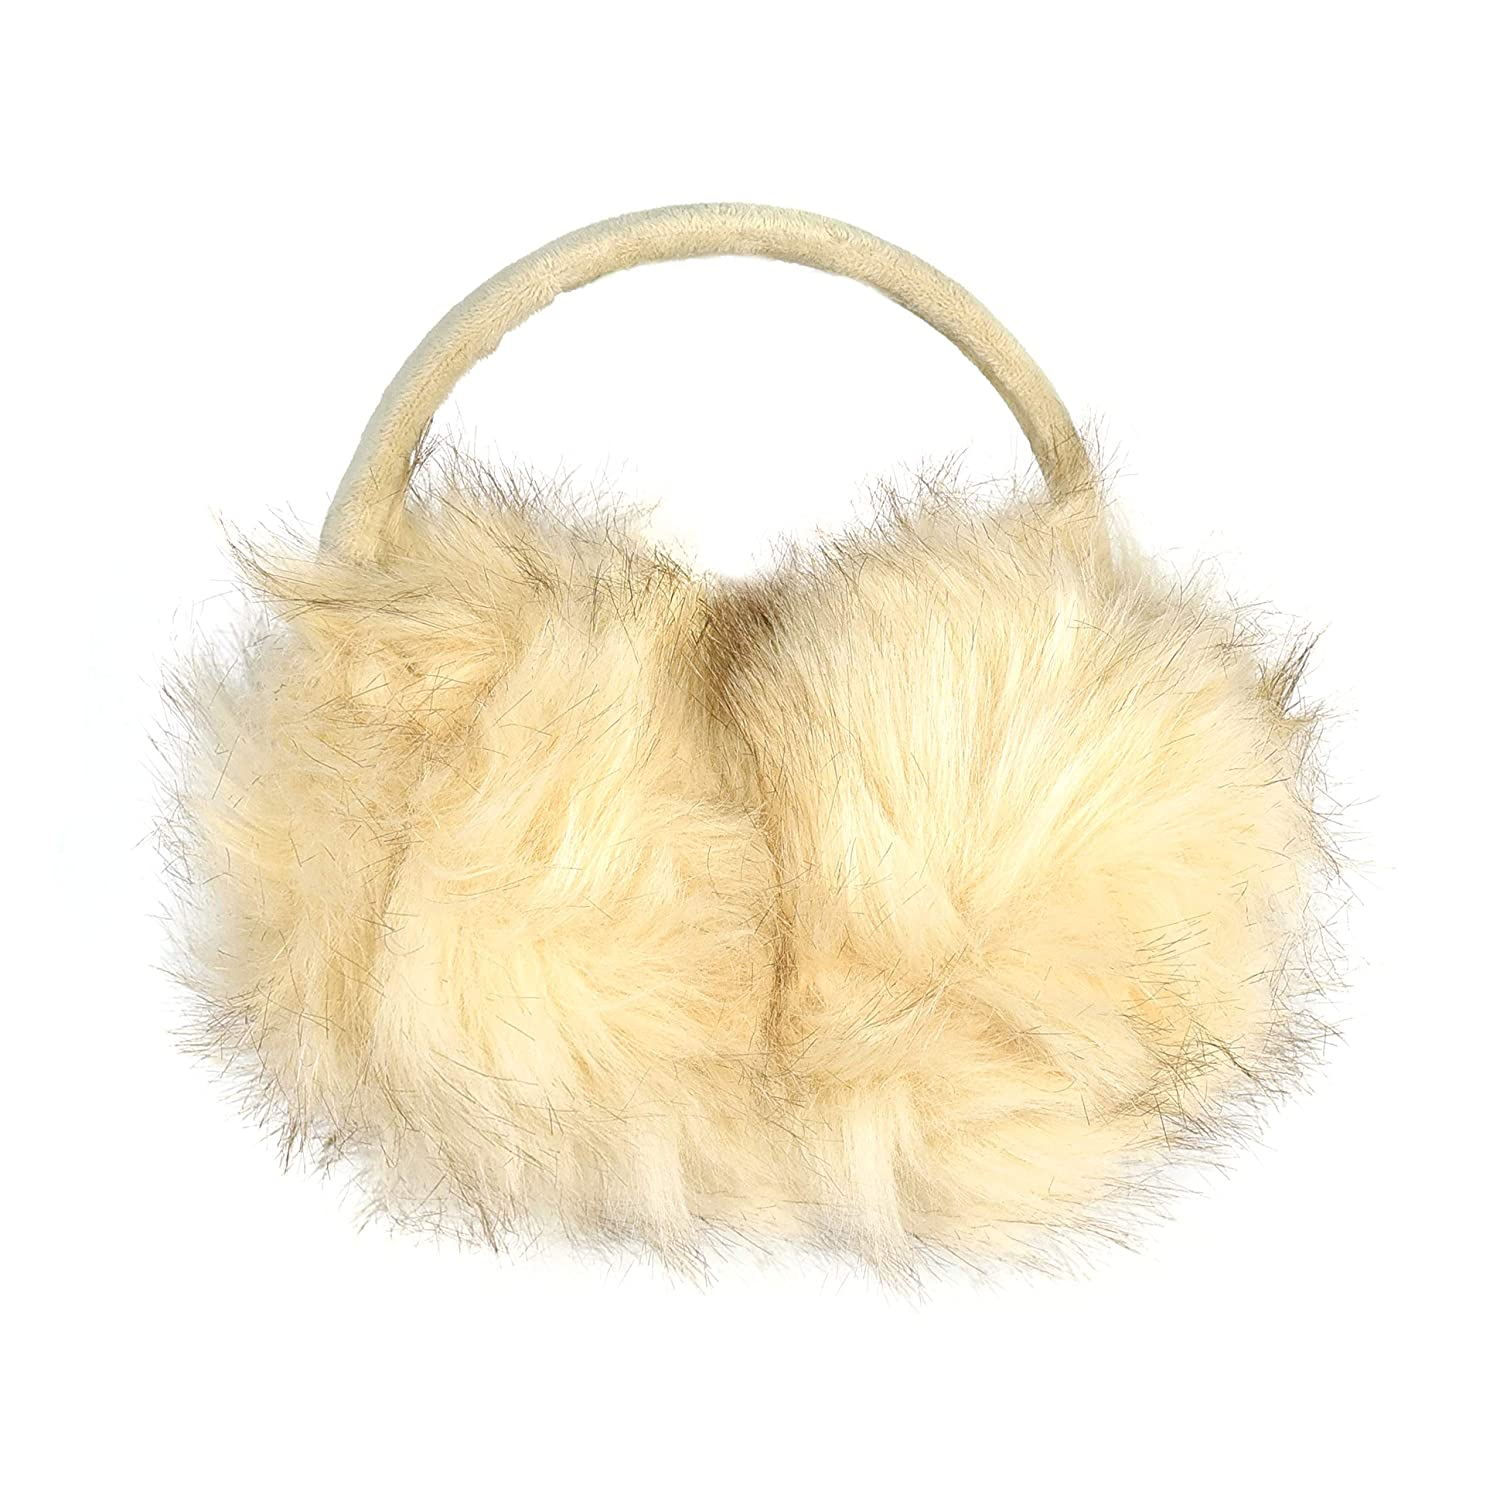 Luxurious Faux Fur Winter Chic Earmuffs- Large Oversized Soft Furry Ear Warmers